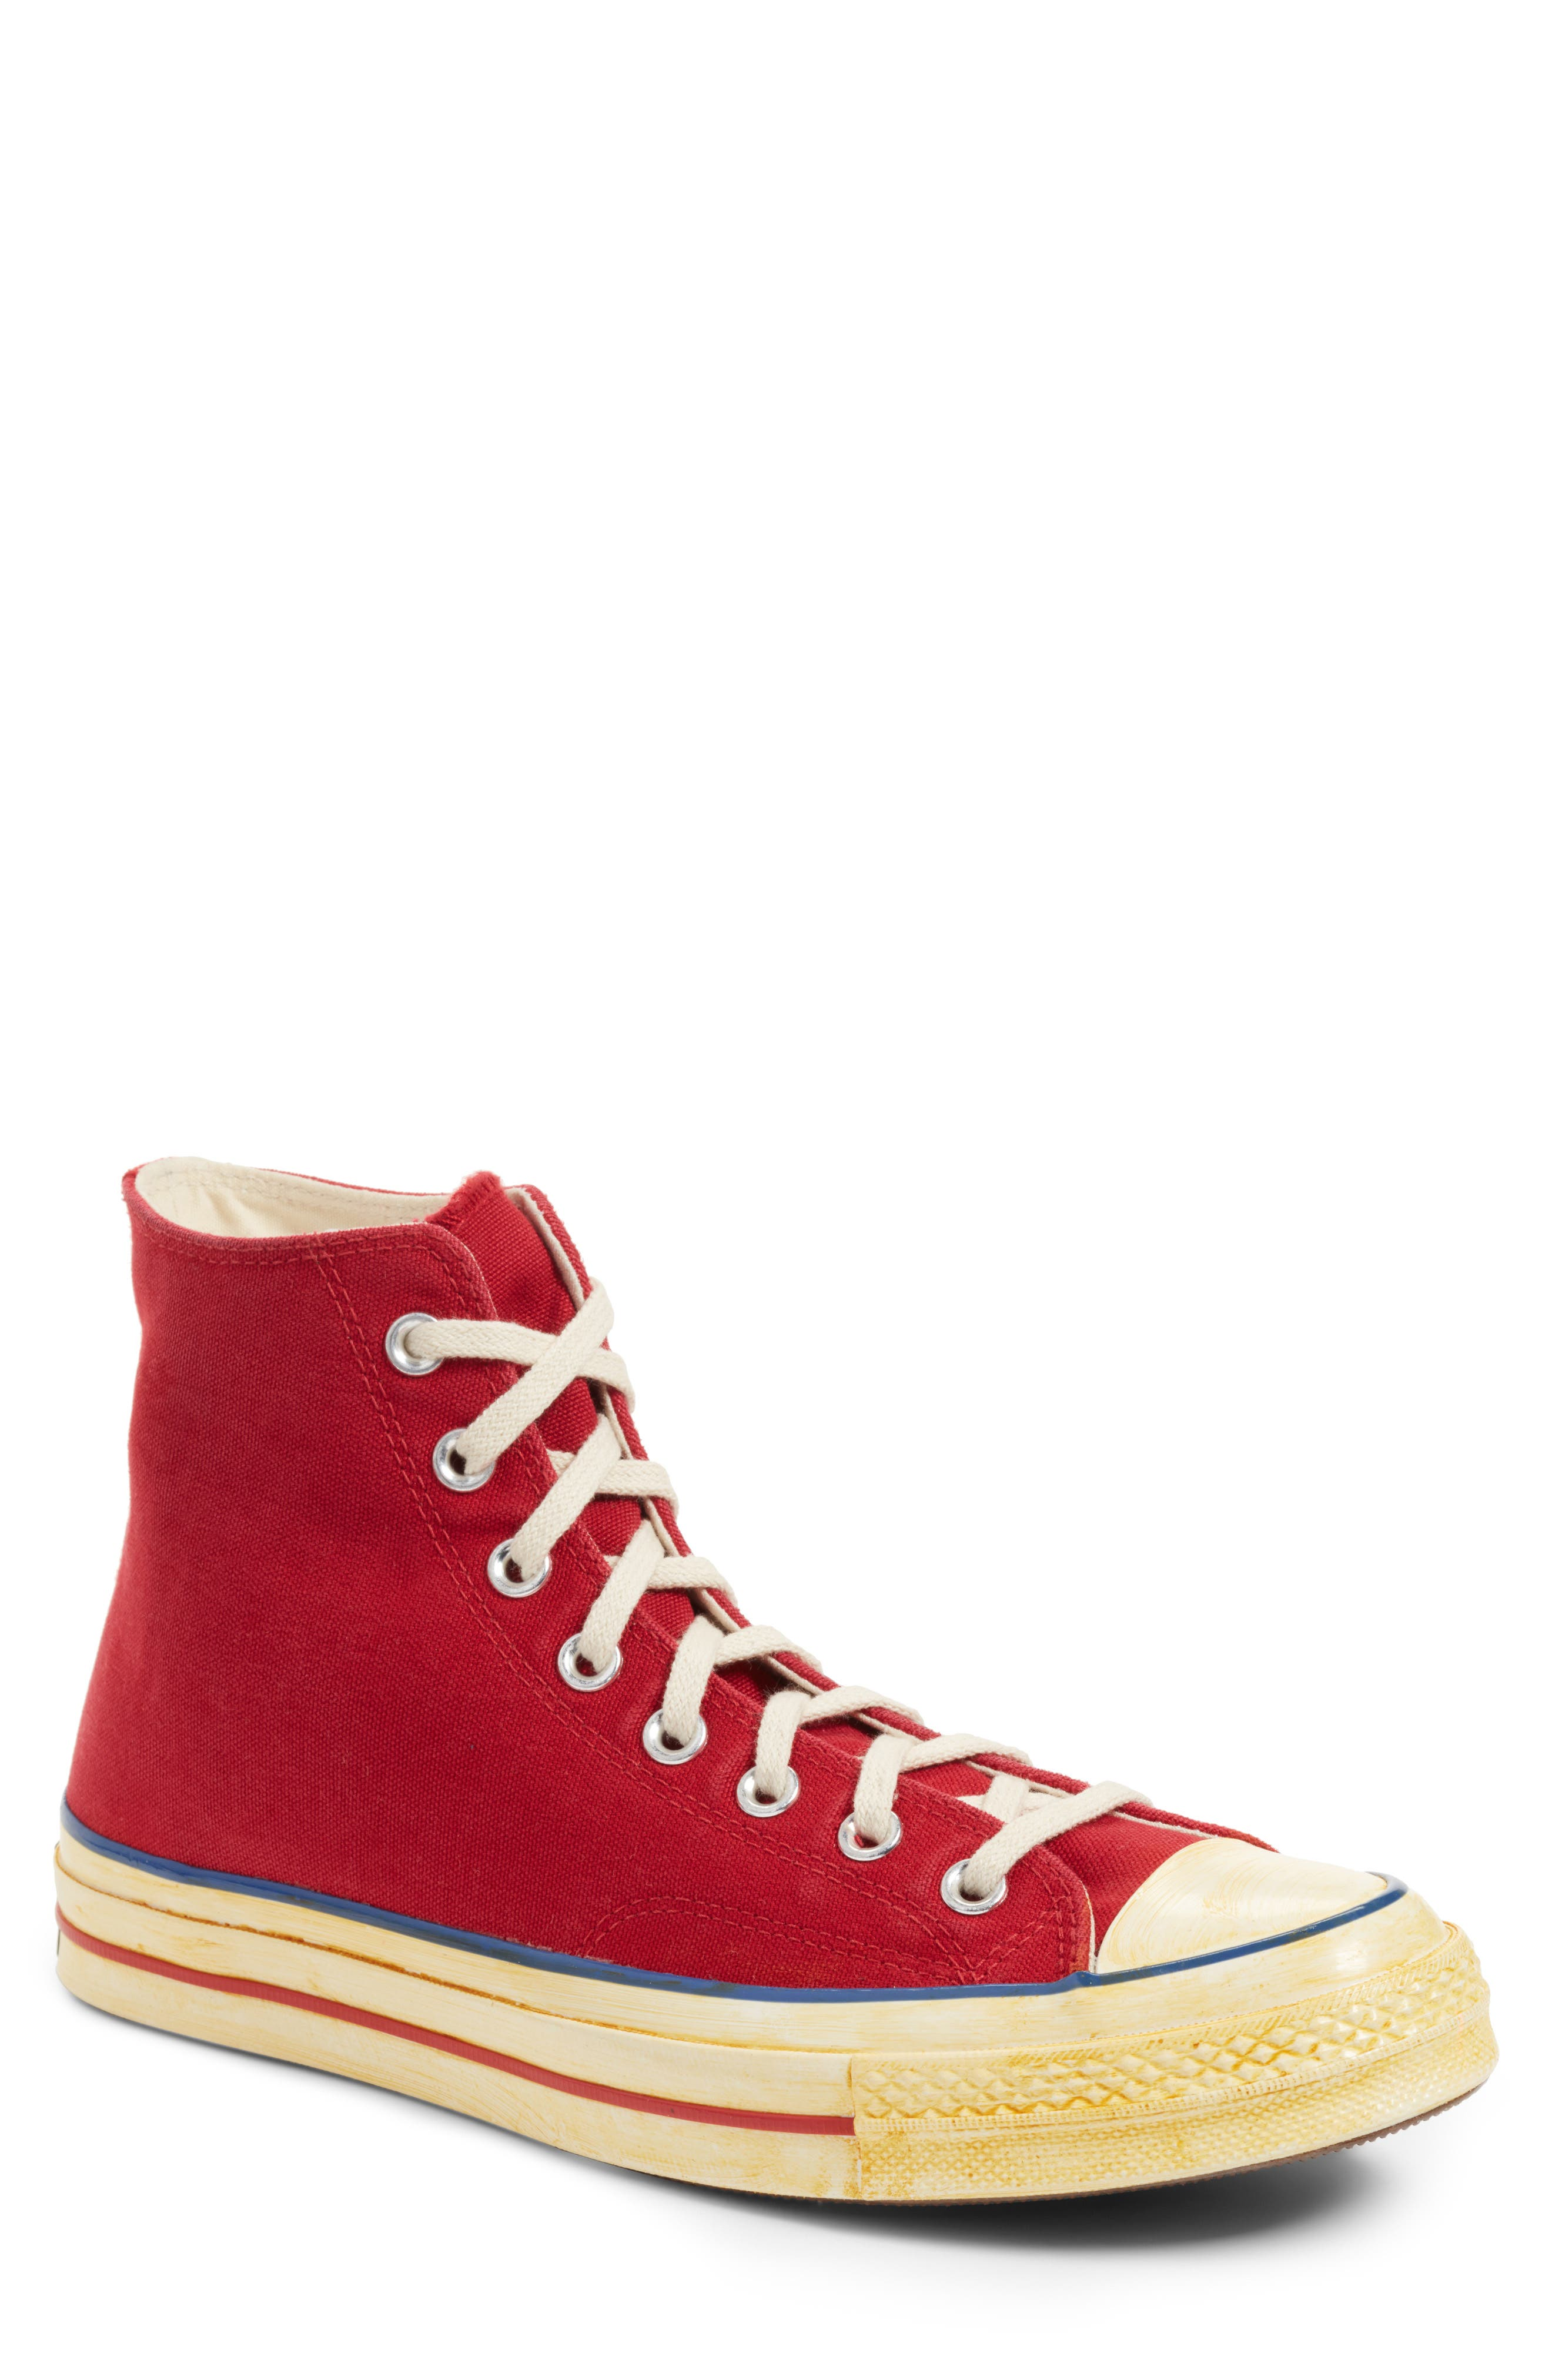 Chuck Taylor<sup>®</sup> All Star<sup>®</sup> 70 High Top Sneaker,                         Main,                         color, Red